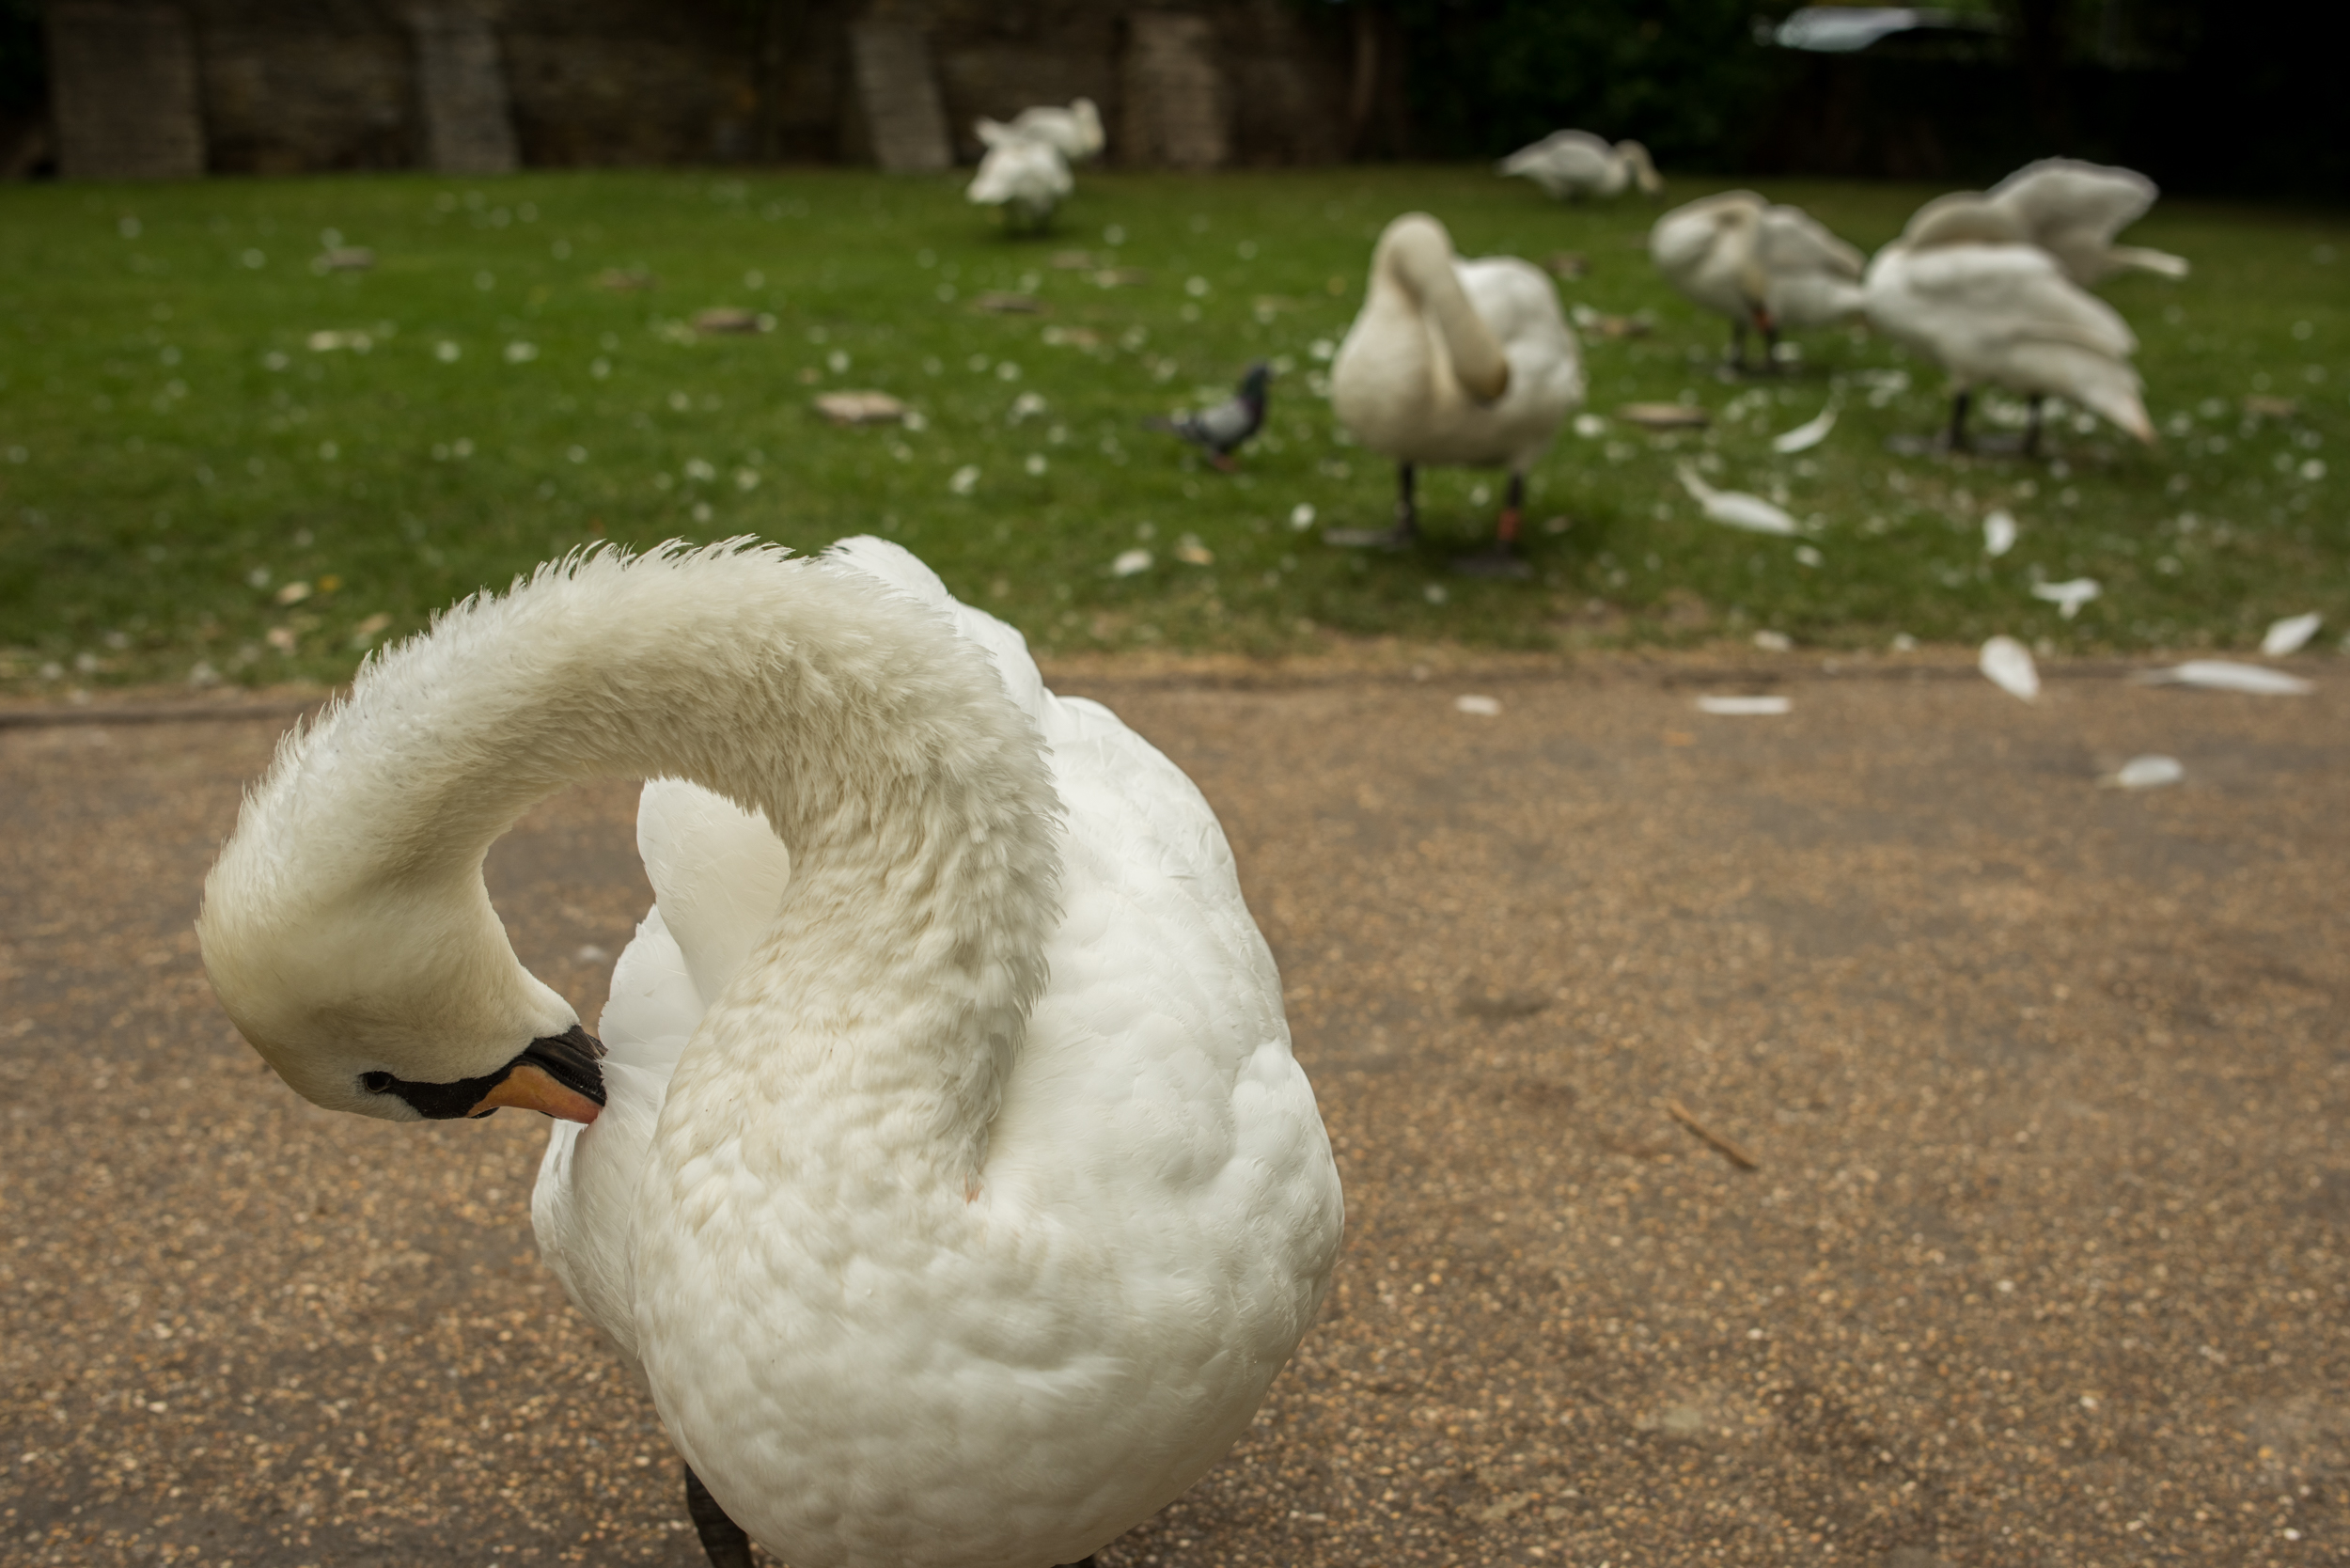 Swans Grooming Themselves In Stratford-upon-Avon 2017